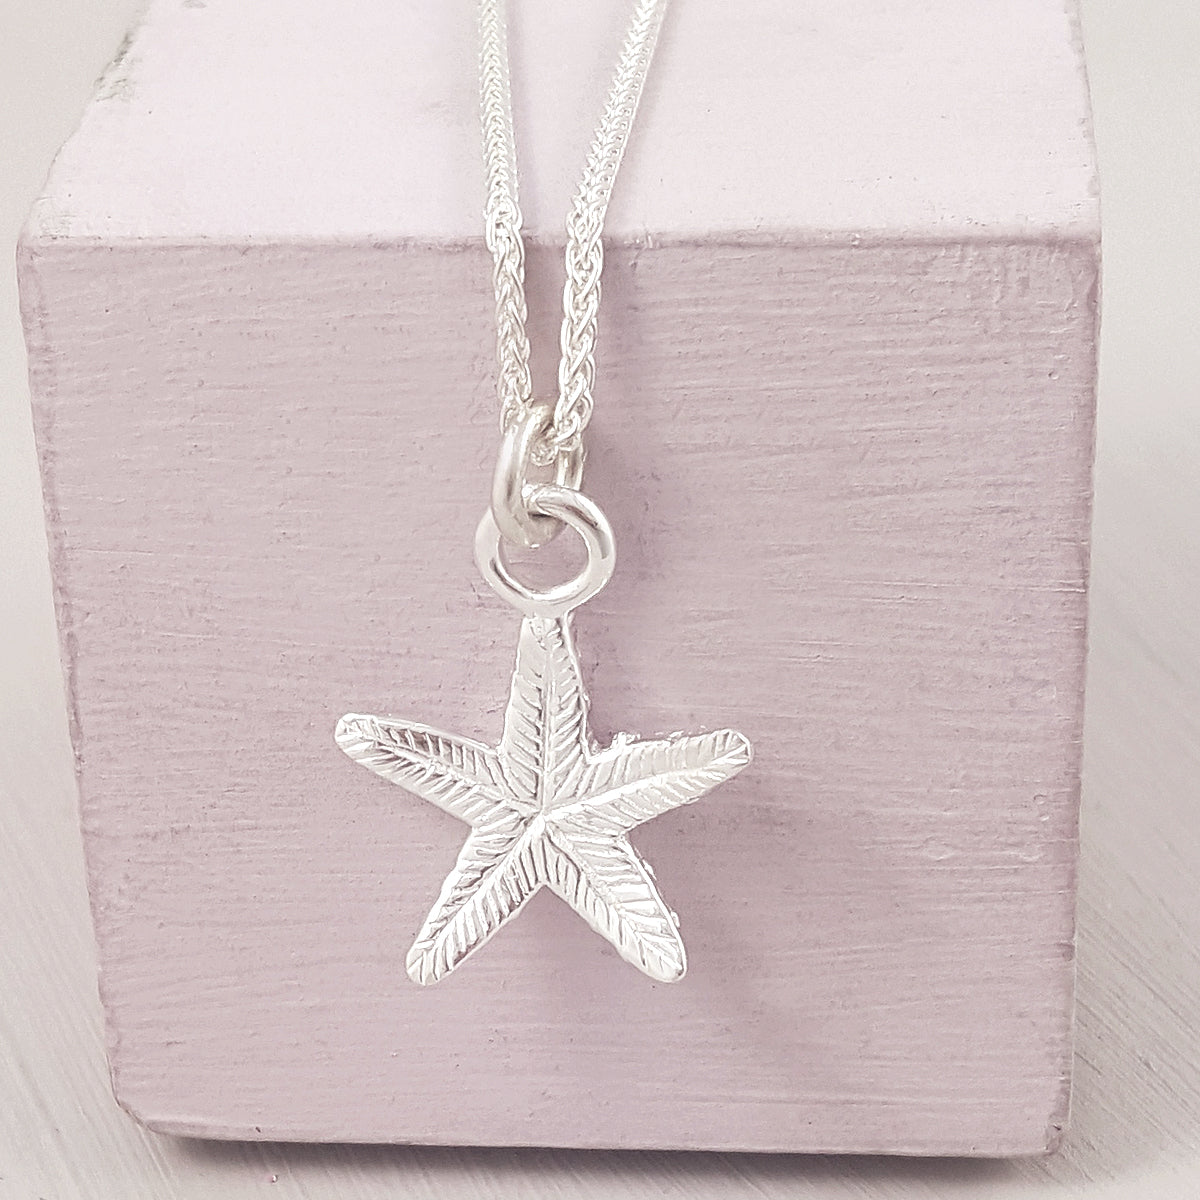 Starfish Silver Charm necklace from Scarlett Jewellery